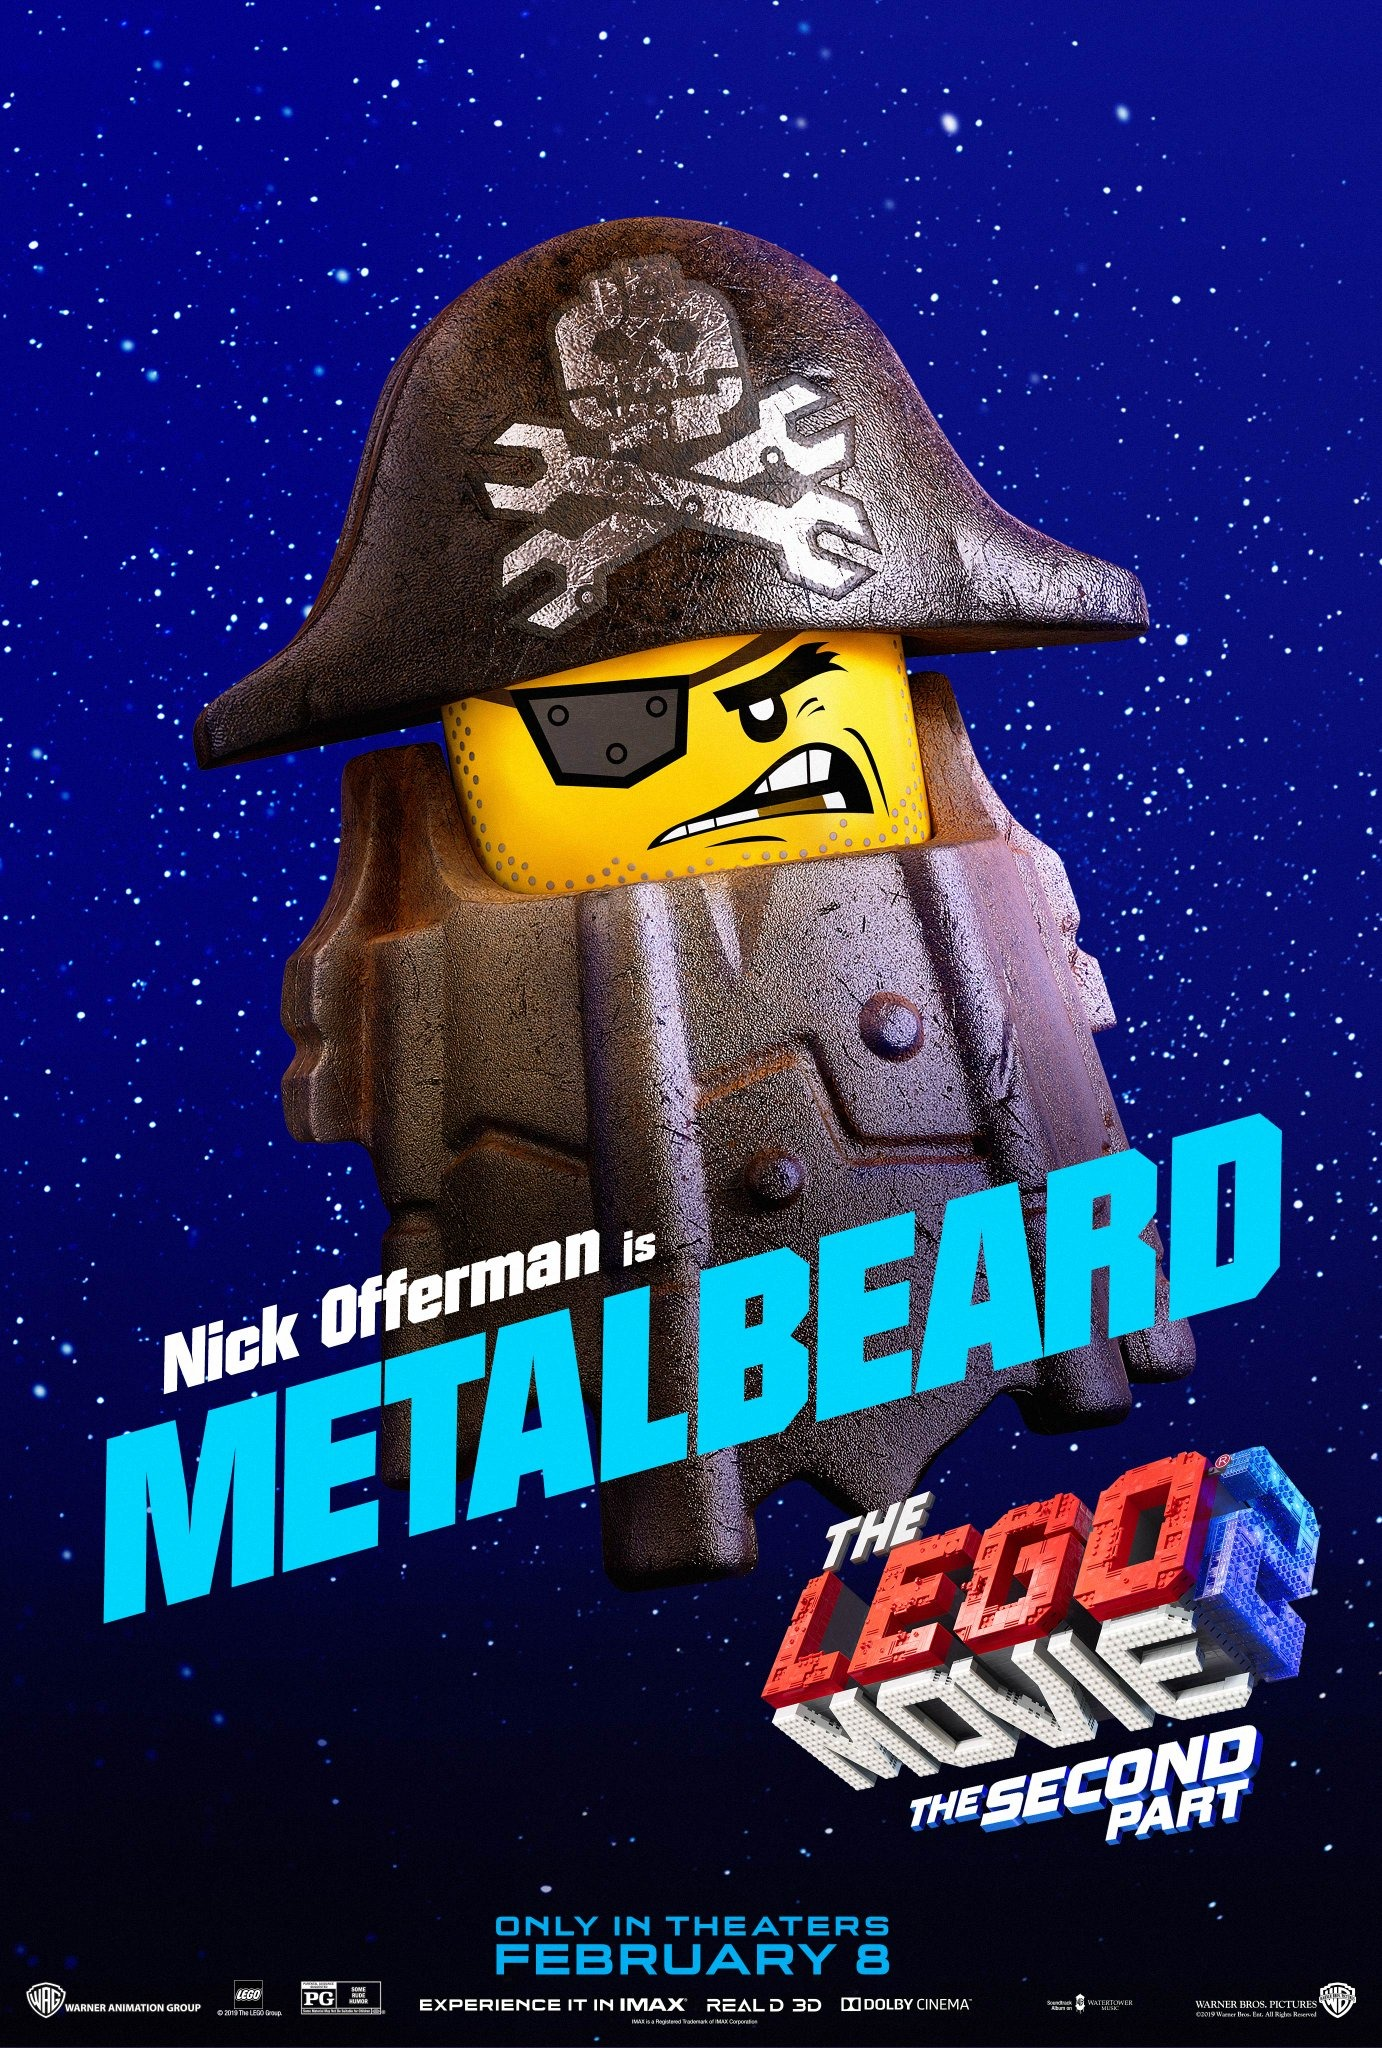 The Lego Movie 2 The Second Part Character Posters Nick Offerman is Metalbeard